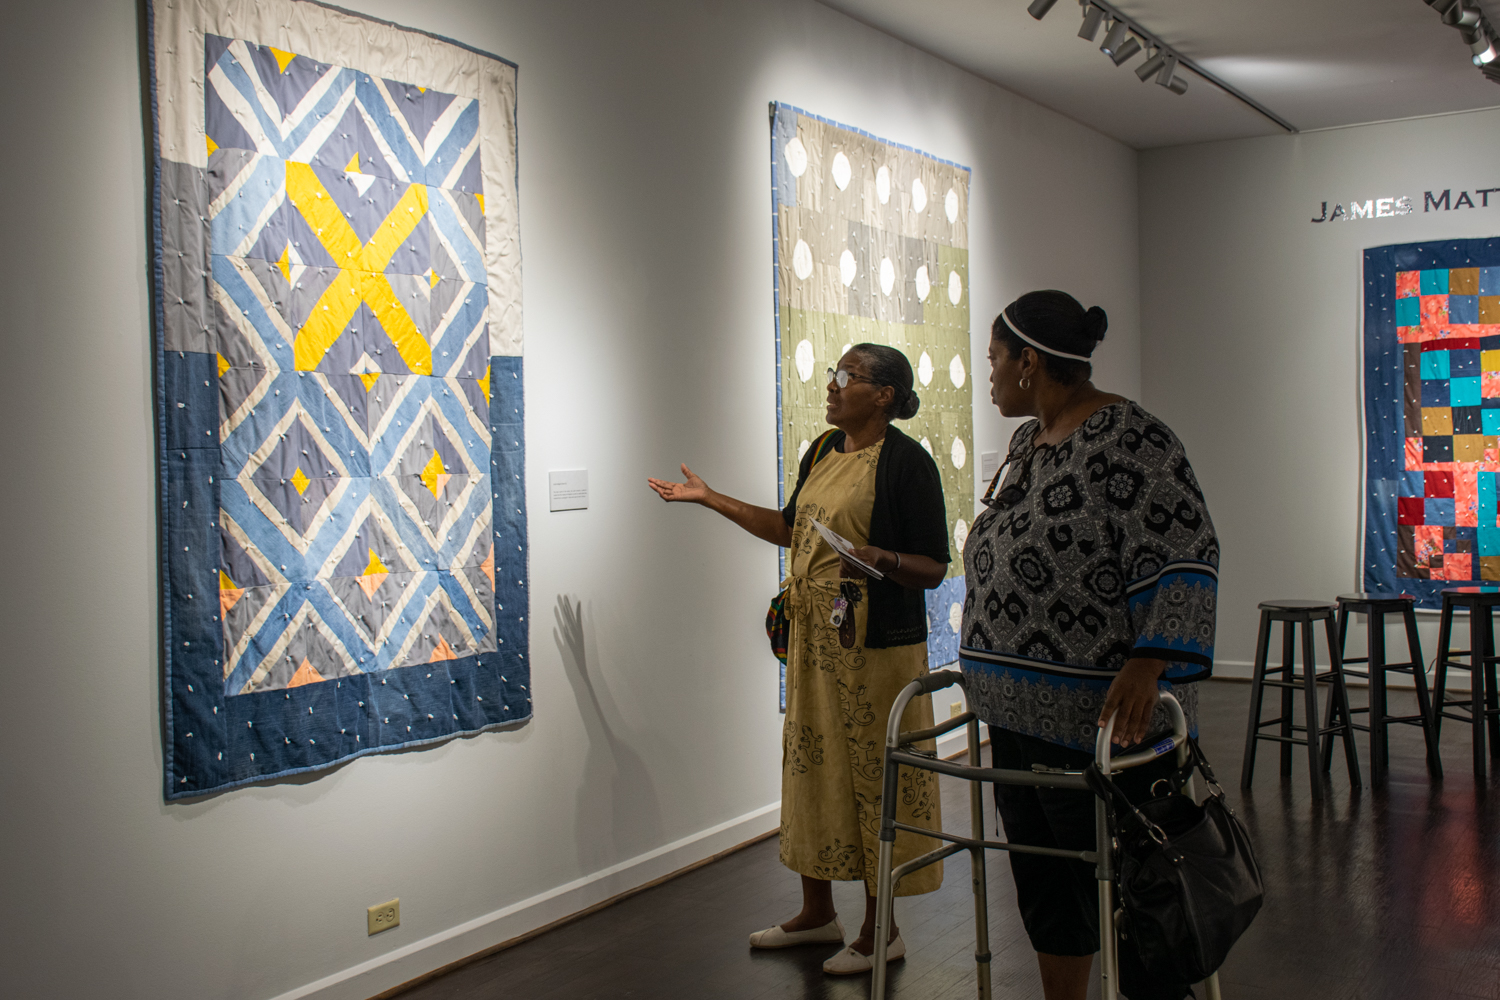 Eviction Quilts reception 2019June27 72dpi-0467.jpg